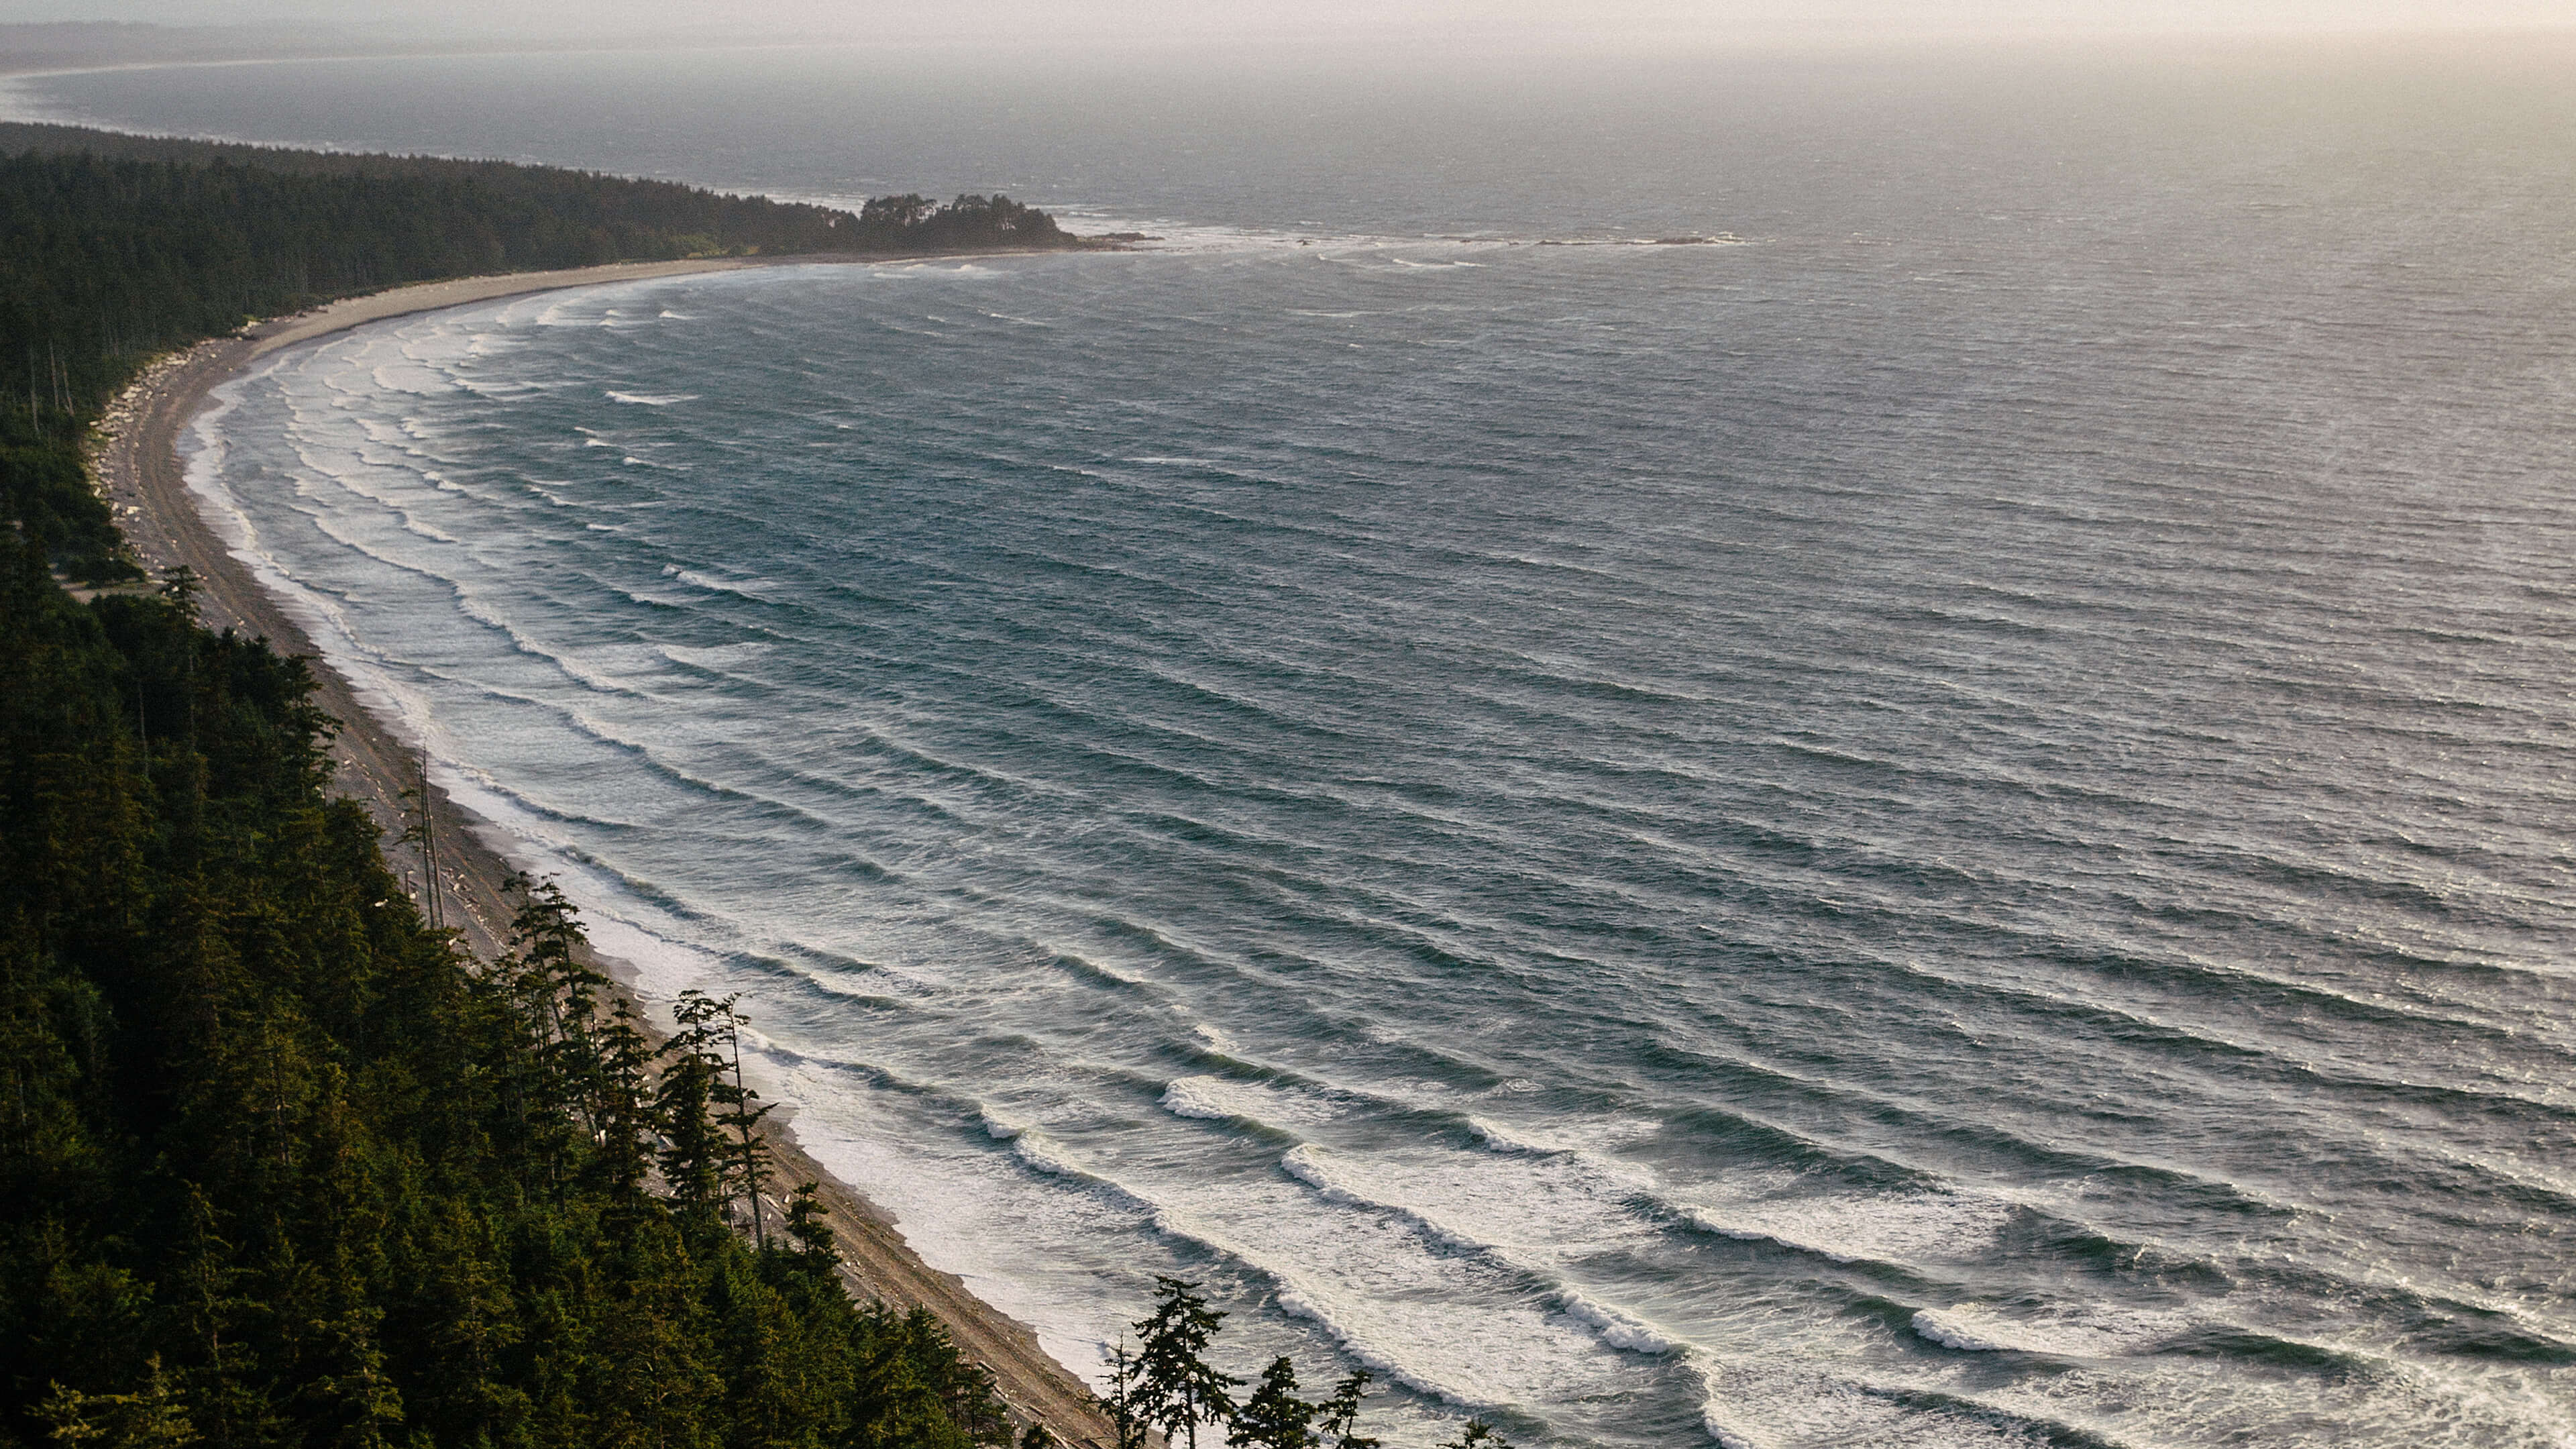 The view of Agate Beach from Tow Hill in Naikoon Provincial Park, Haida Gwaii, near sunset.